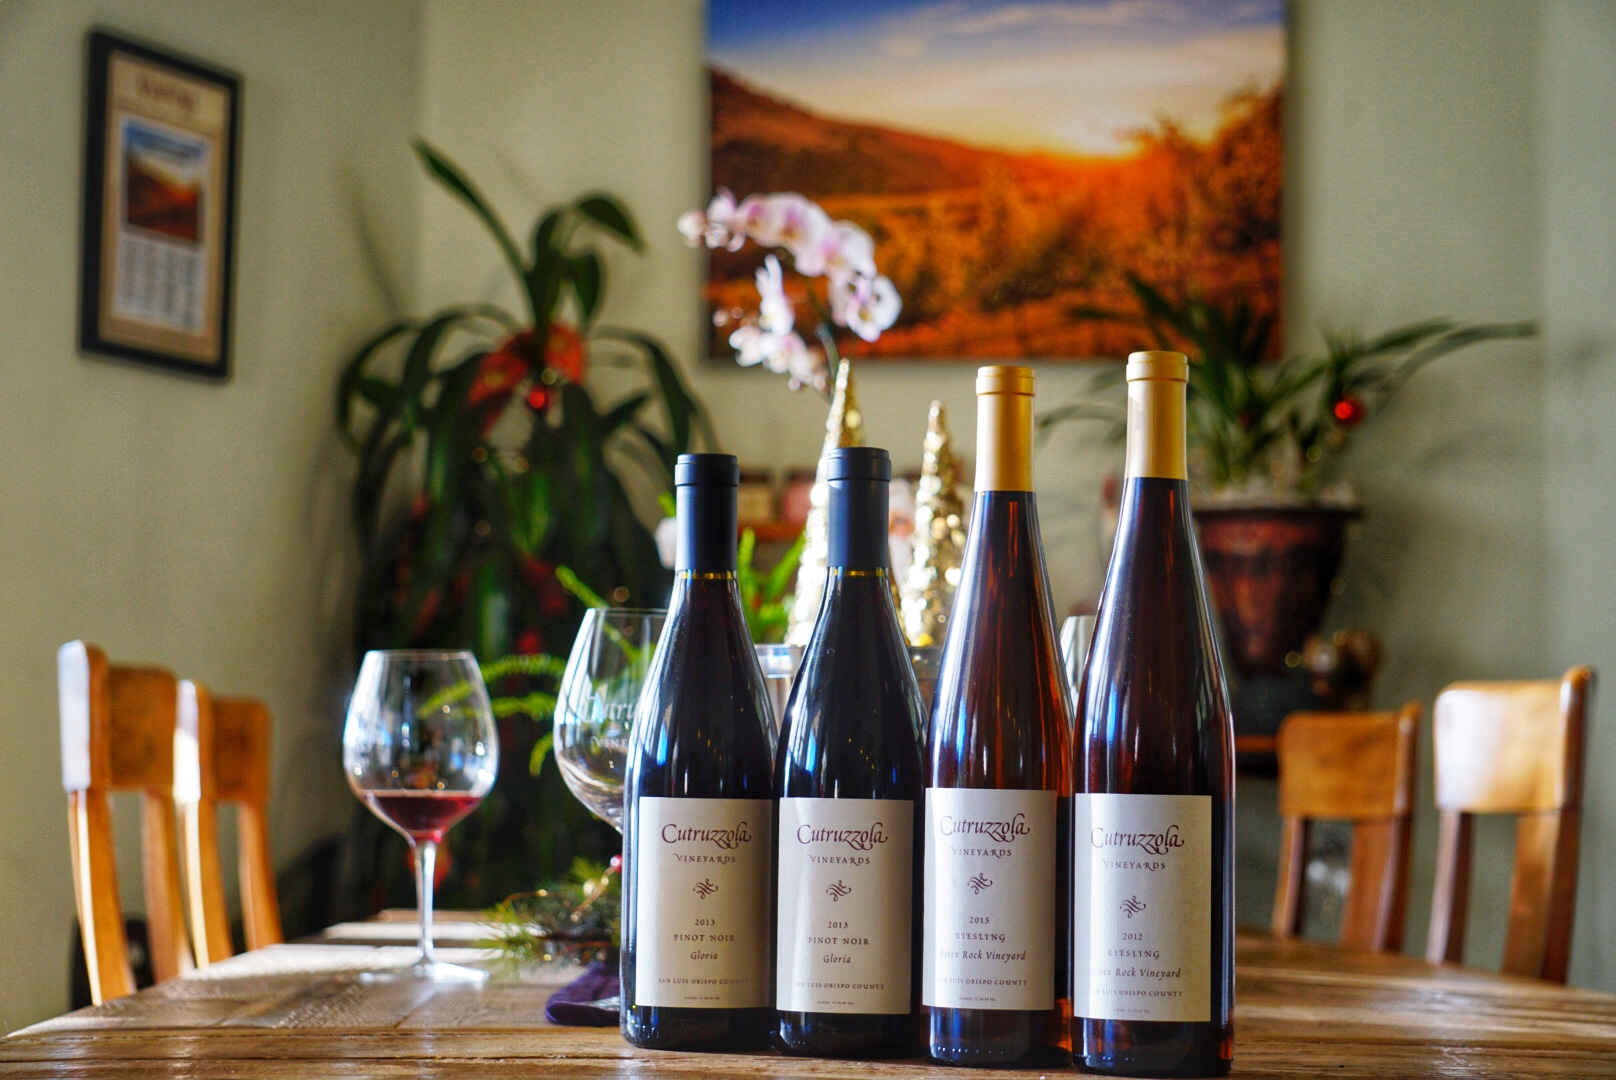 downtown cambria winery.jpg